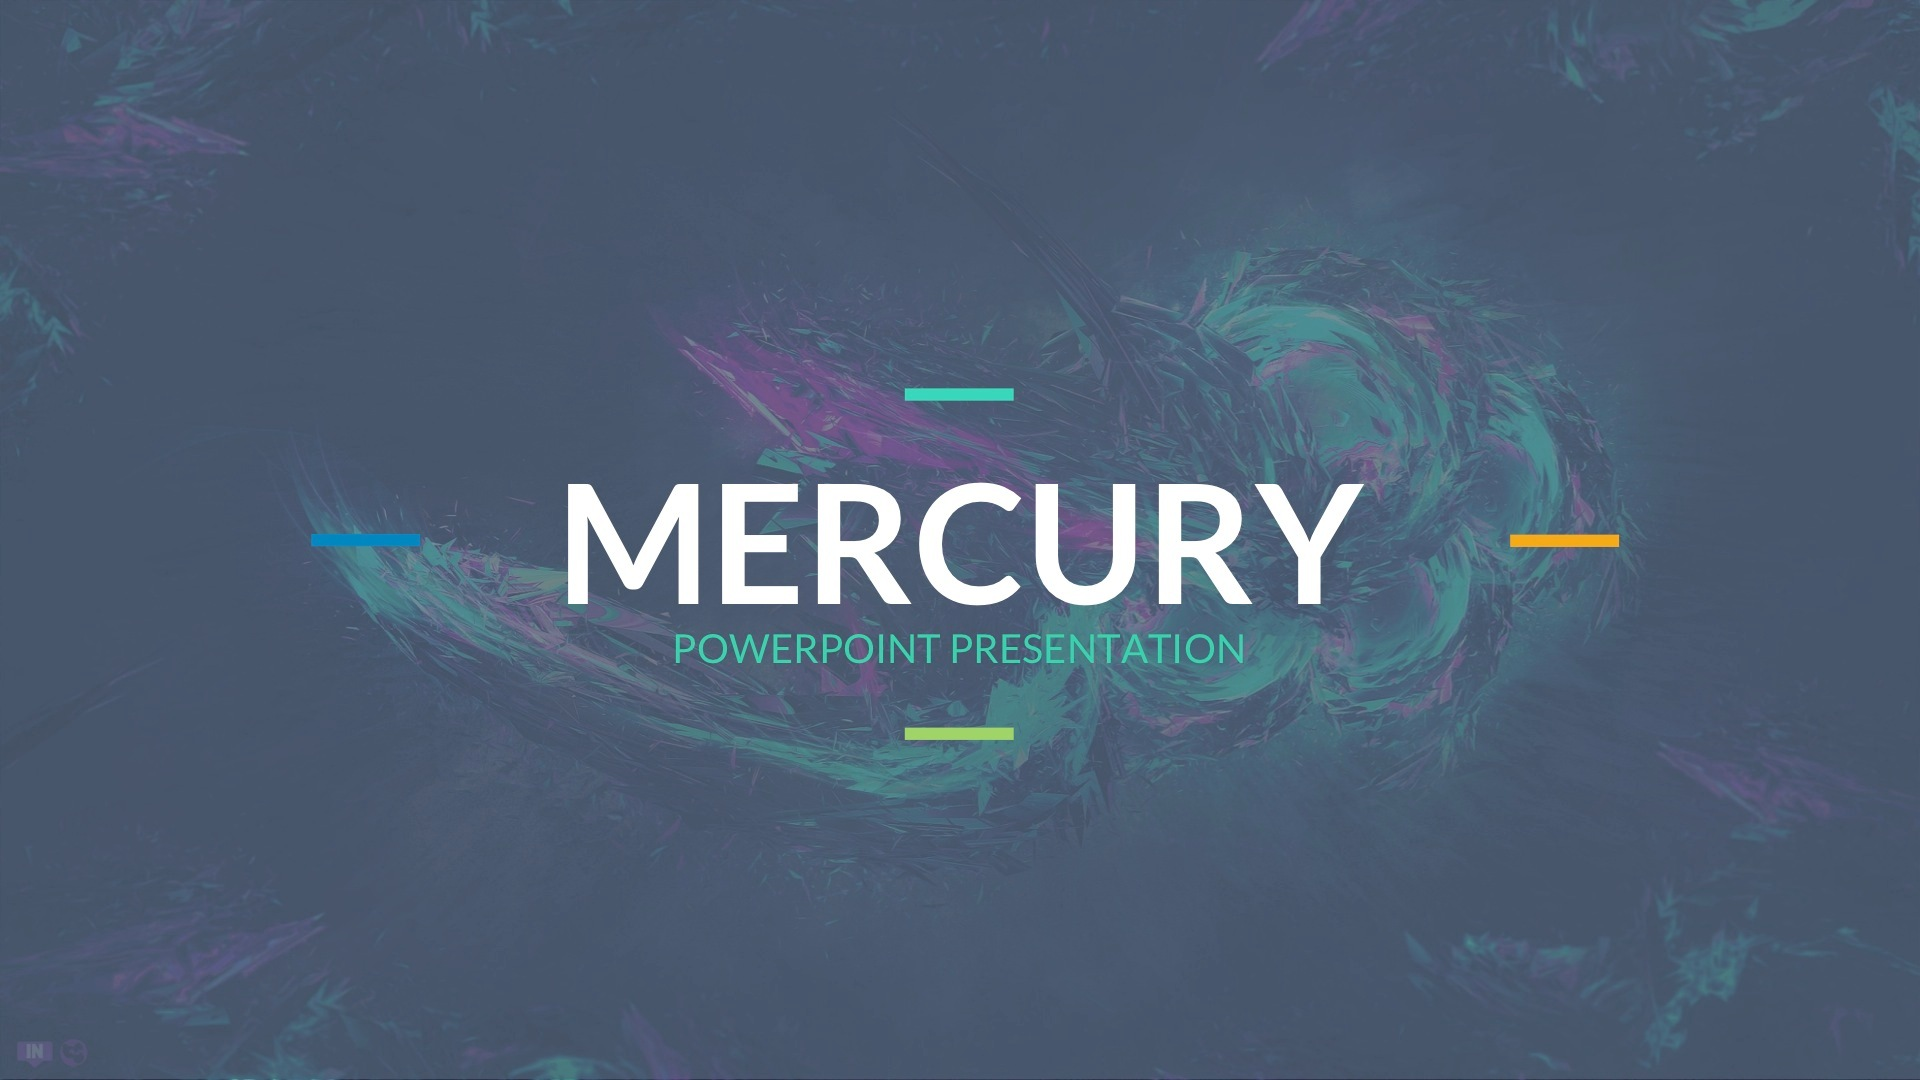 Mercury google slides template by jetfabrik graphicriver for Downloadable themes for google slides